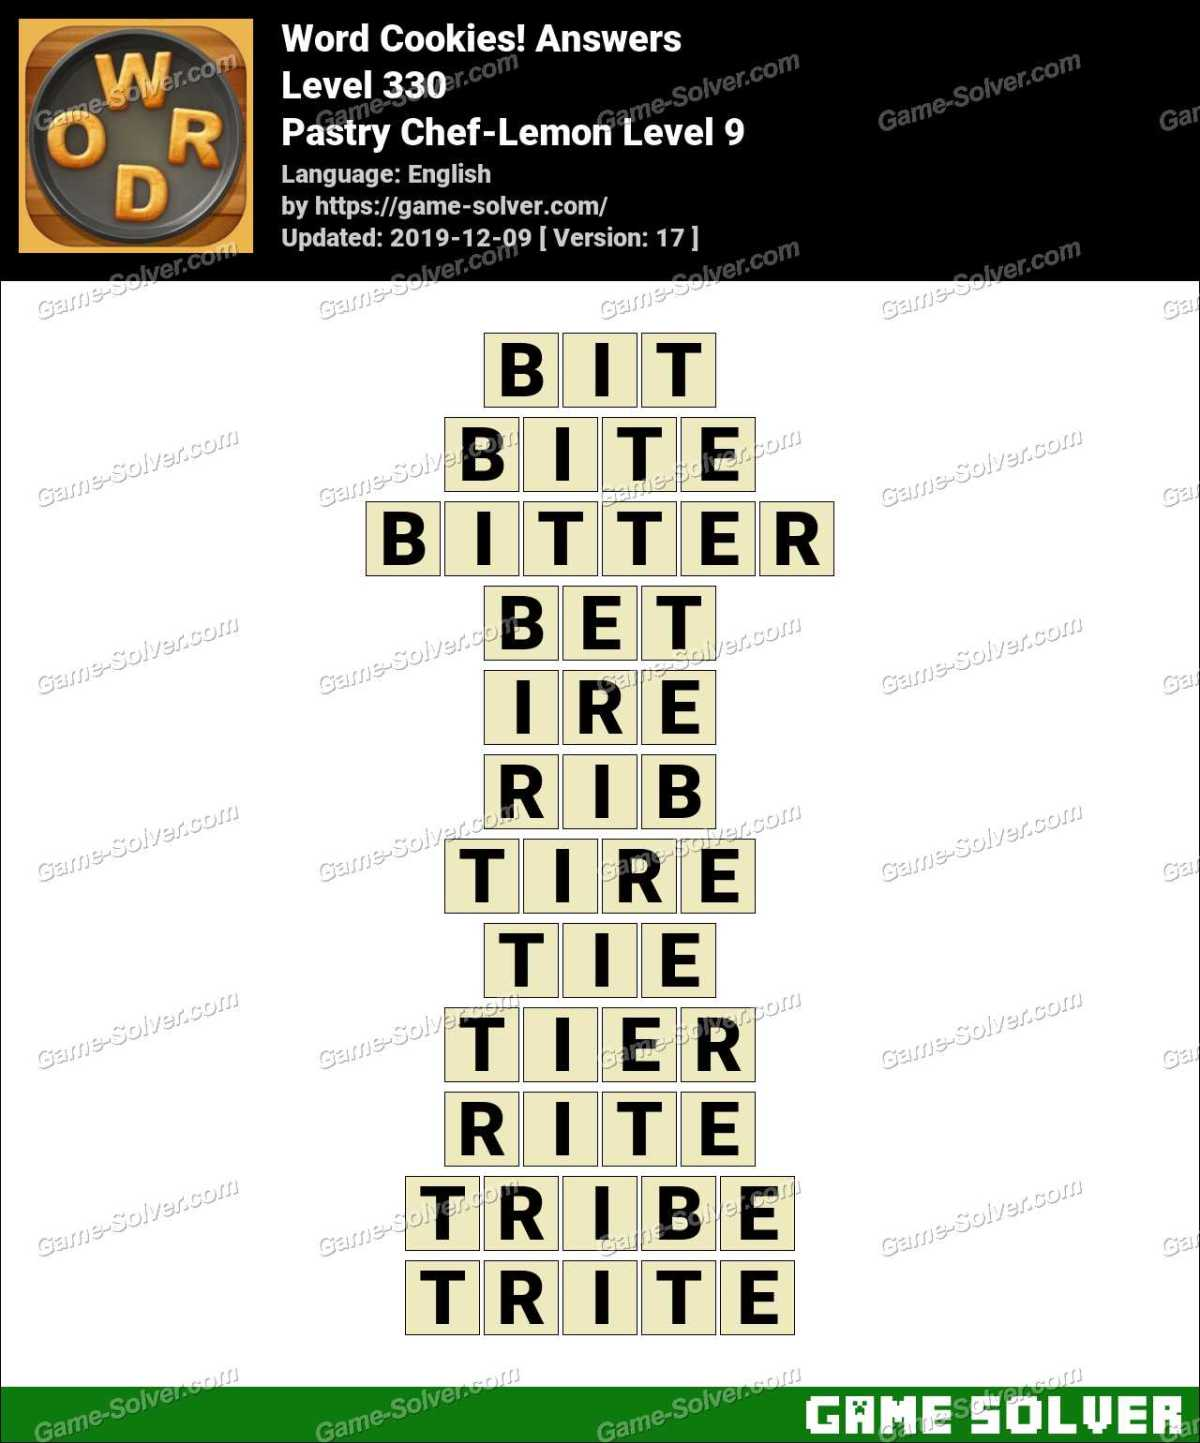 Word Cookies Pastry Chef-Lemon Level 9 Answers